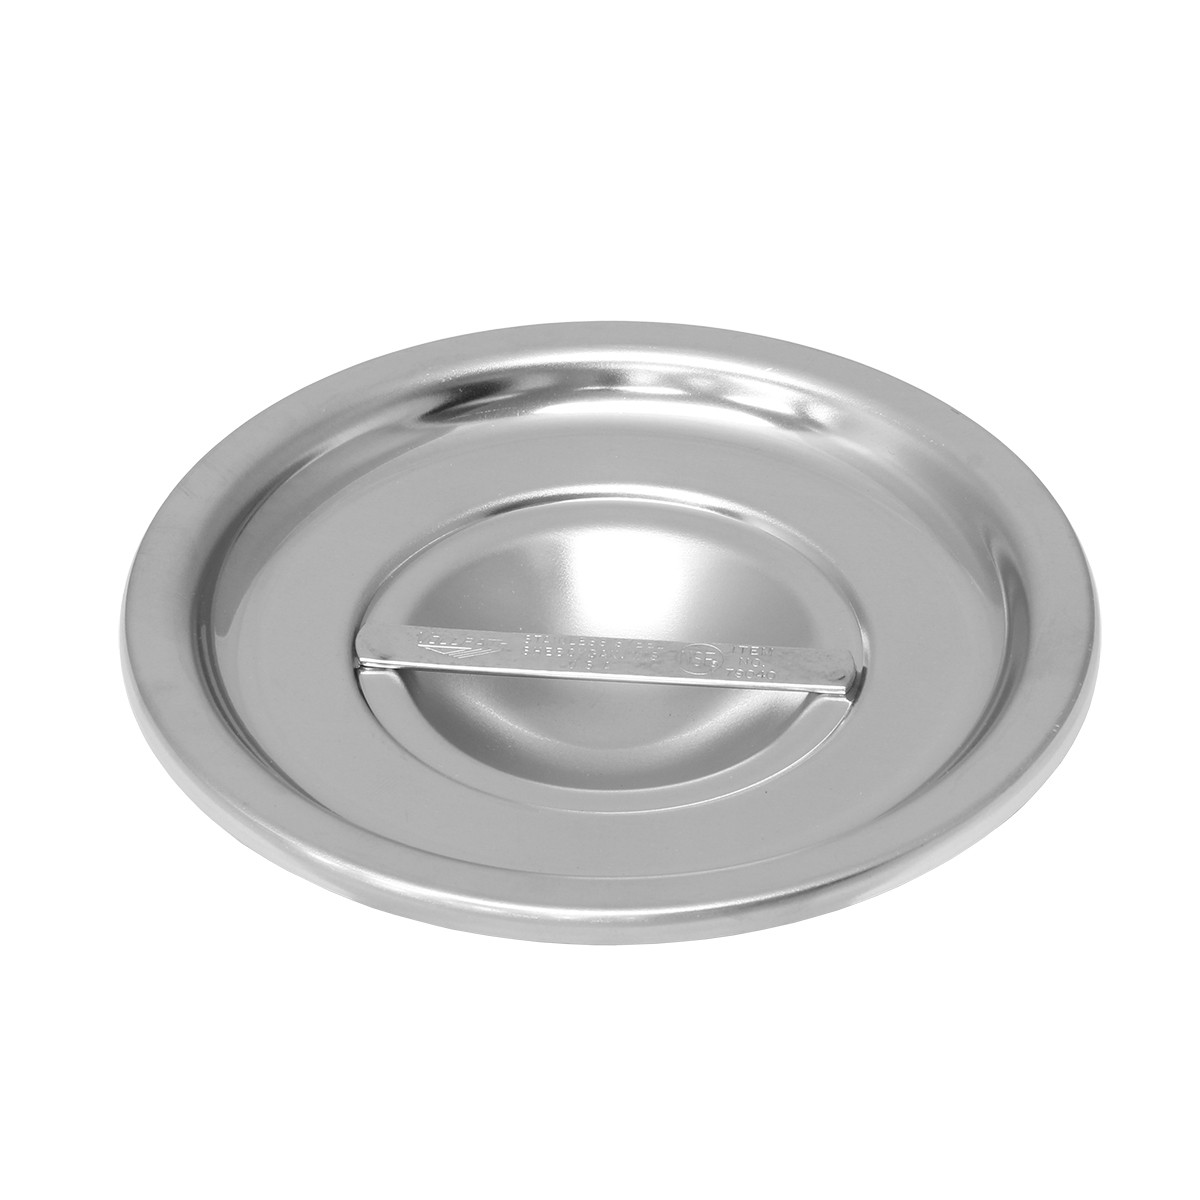 Stainless Steel Covers - 12 Qts